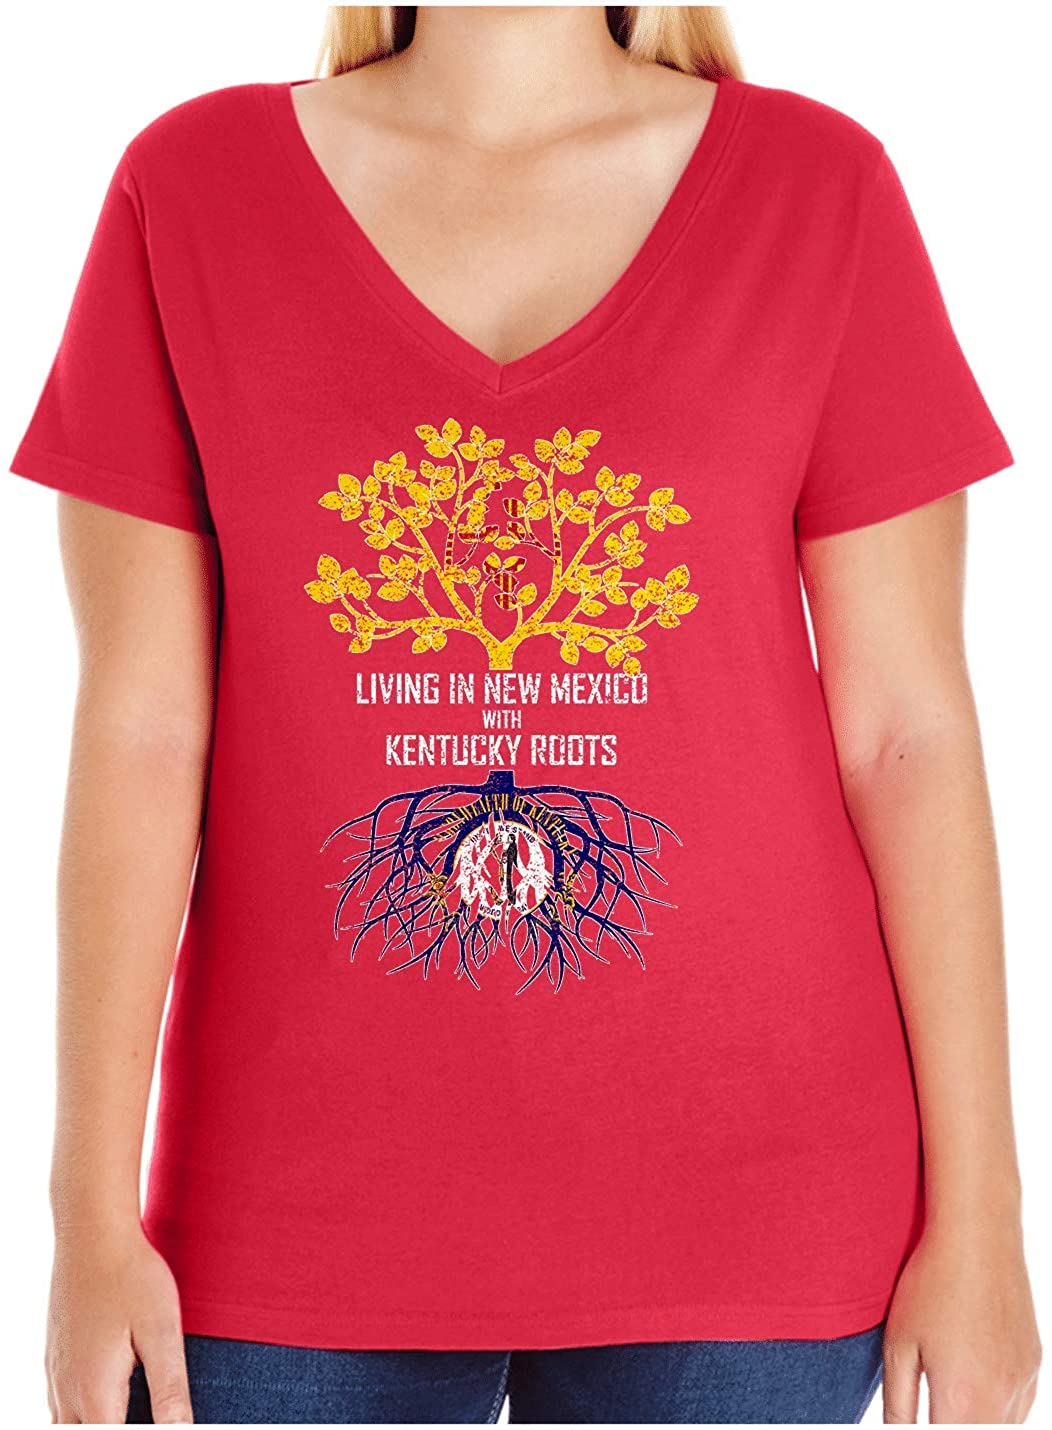 HARD EDGE DESIGN Women's Living in New Mexico with Kentucky Roots Plus Size V Neck T-Shirt, Size 3, Red